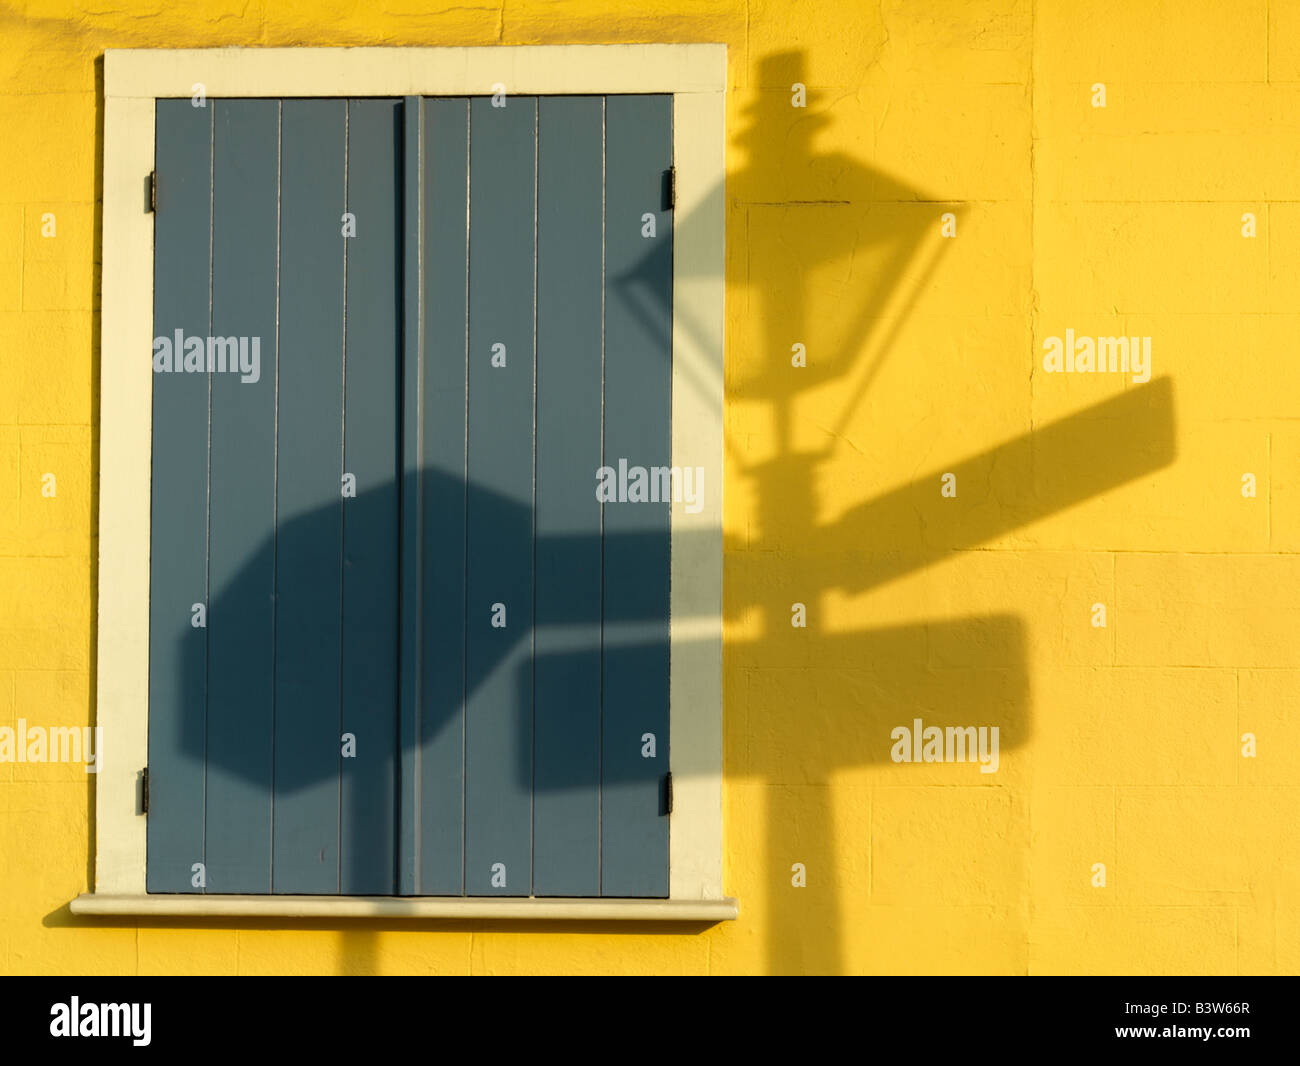 USA,Louisiana,New Orleans,French Quarter,shadow of French Quarter lamp post on a yellow wall - Stock Image